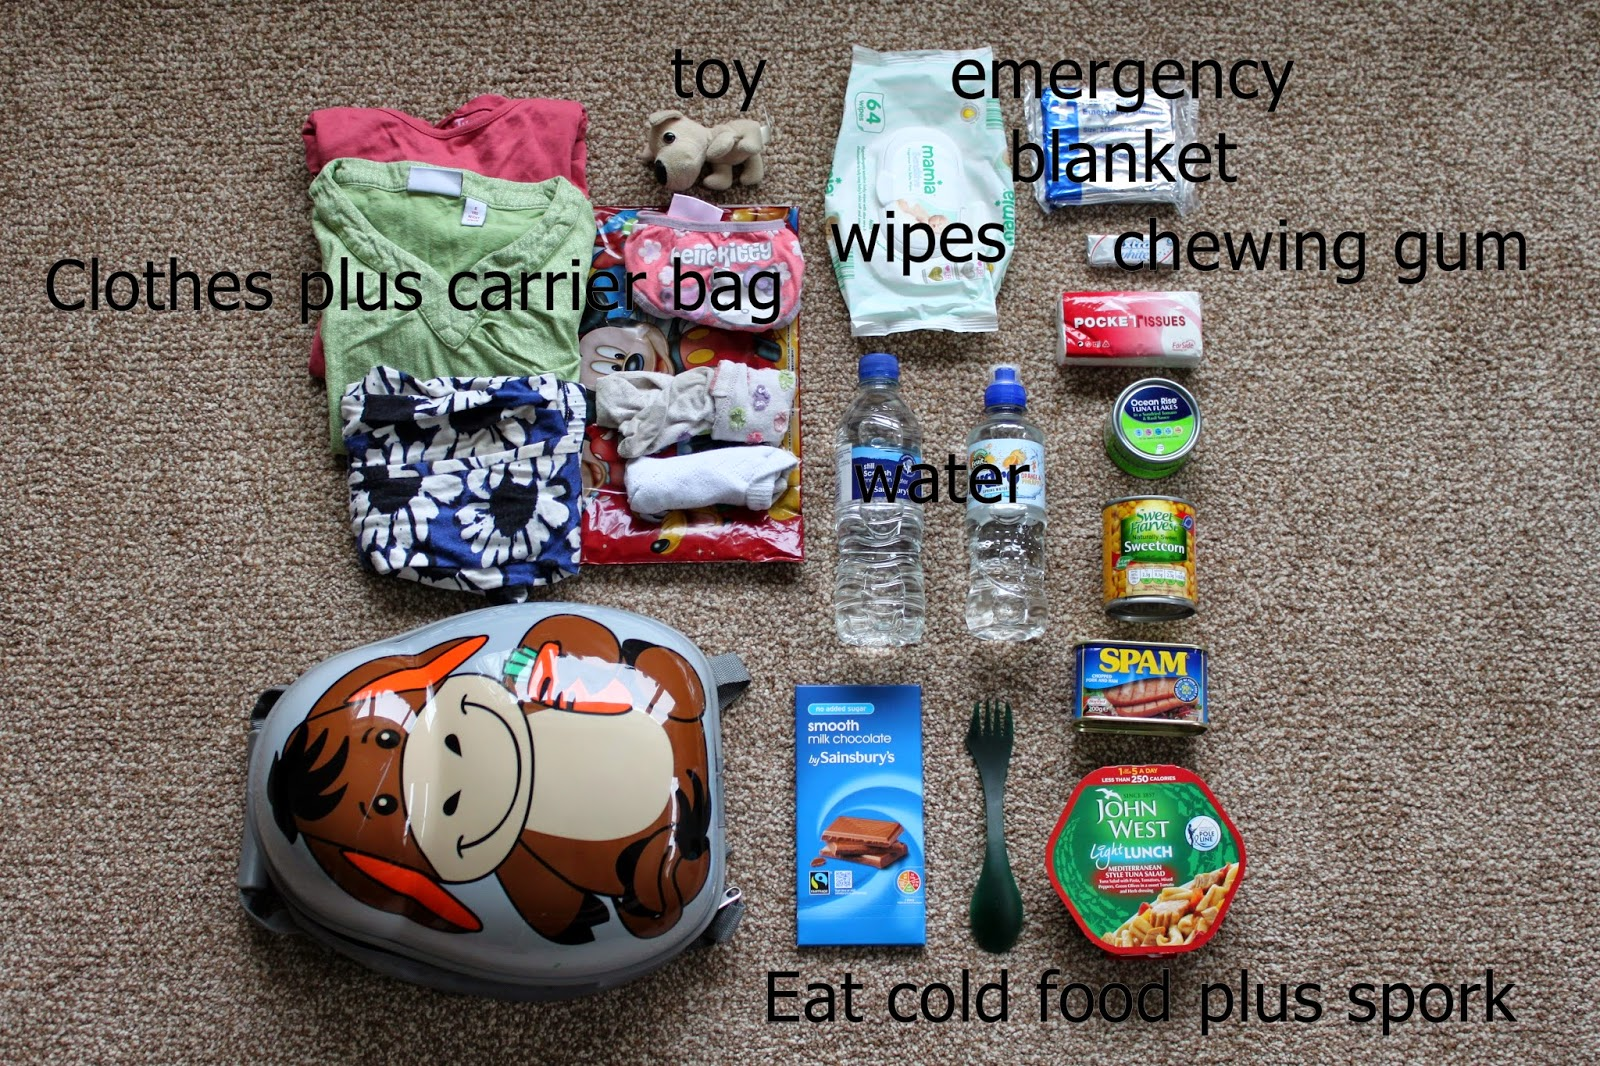 One of the things we are encouraged to do at church is to be prepared for physical adversity including times of distress. The idea of the 72 hour emergency ... & Tips for Basic Child 72 hr Emergency Kit | A Noodoll Life